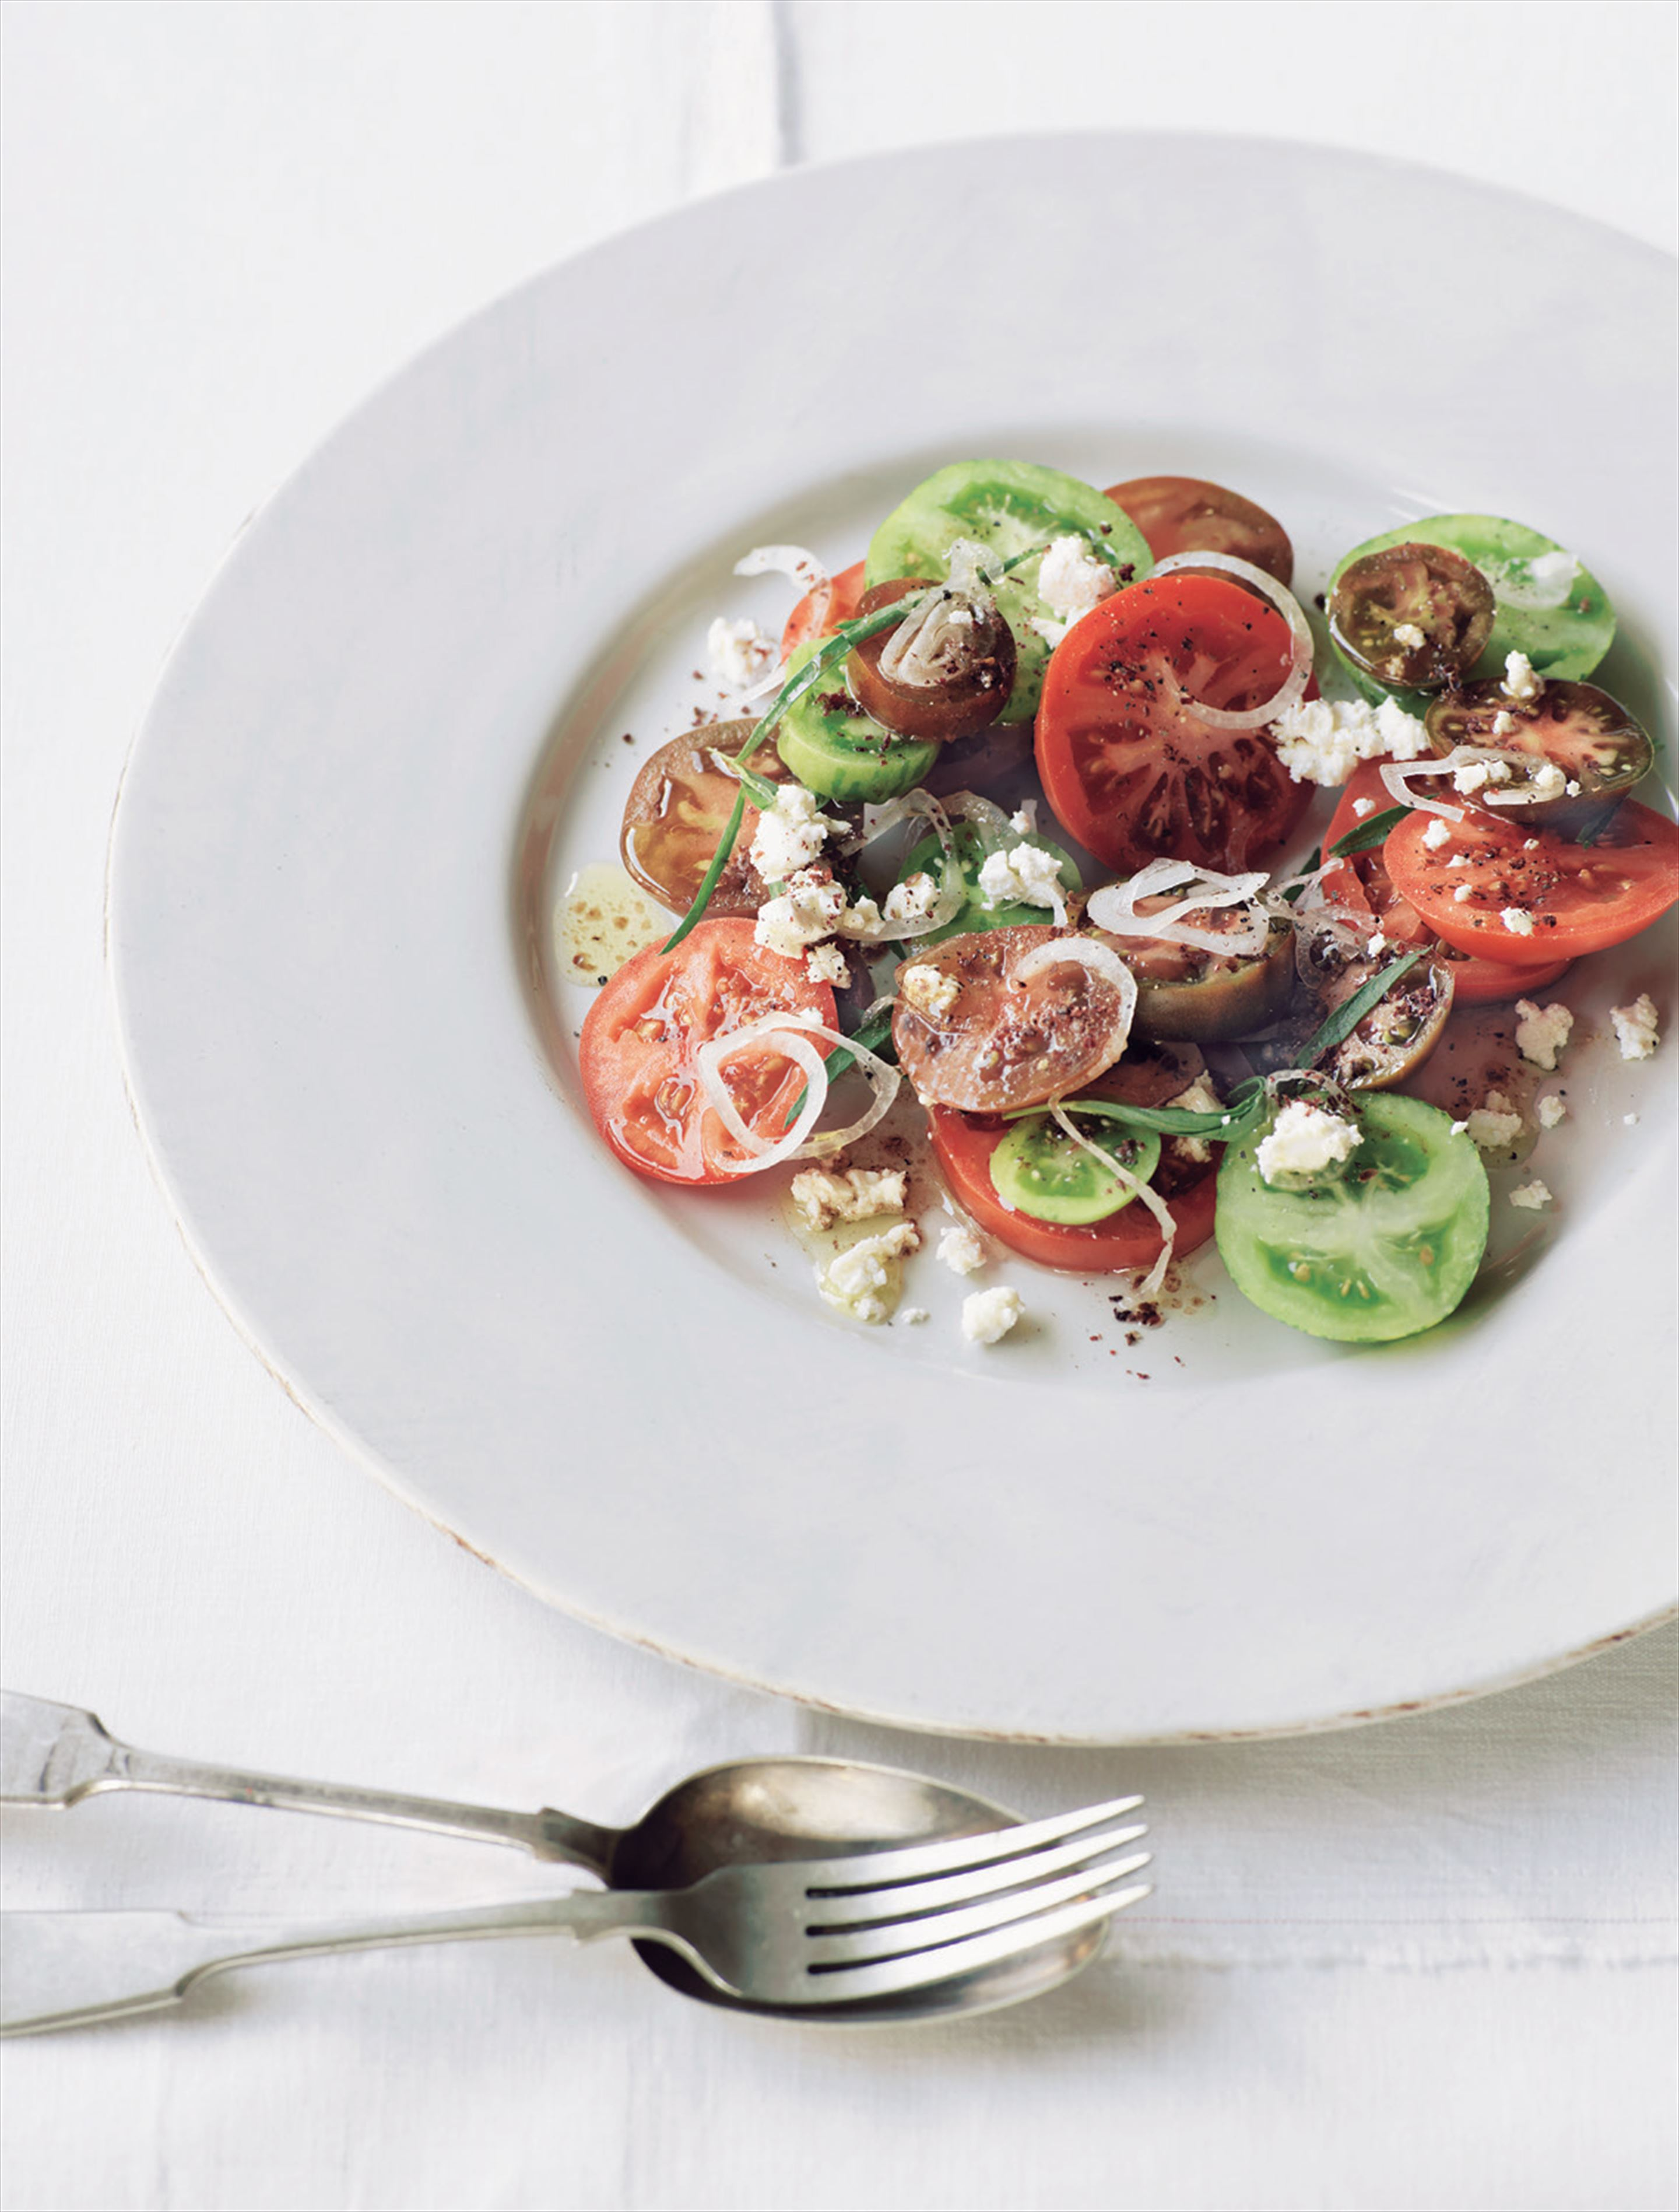 Tomato salad with tarragon, aged fetta and sumac dressing